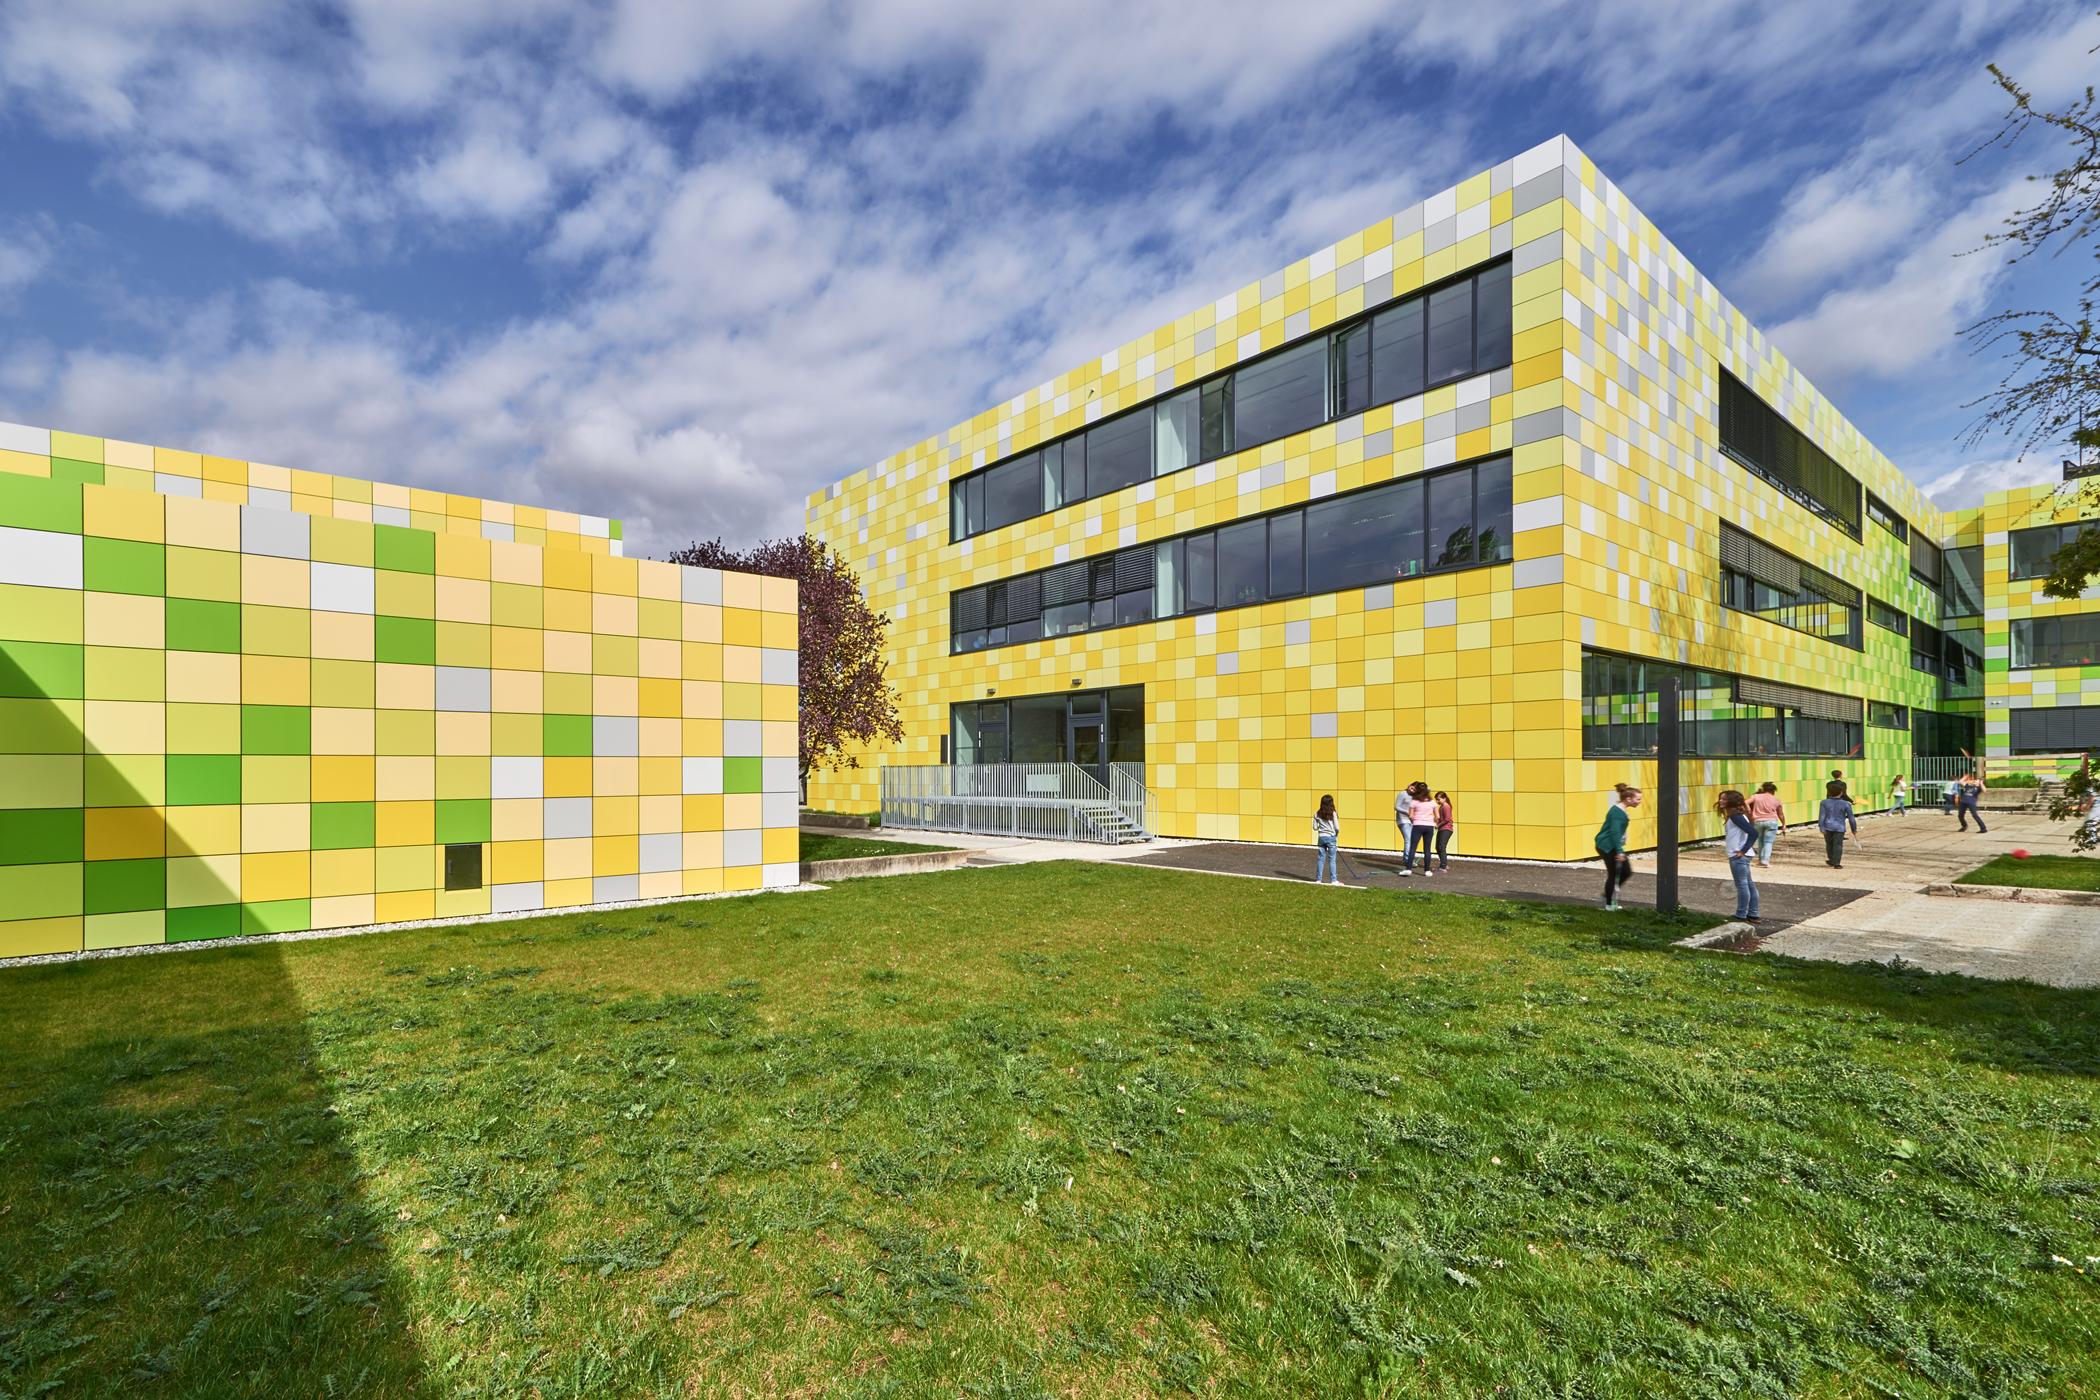 Renovation Of The Secondary Academic School In Bruck An Der